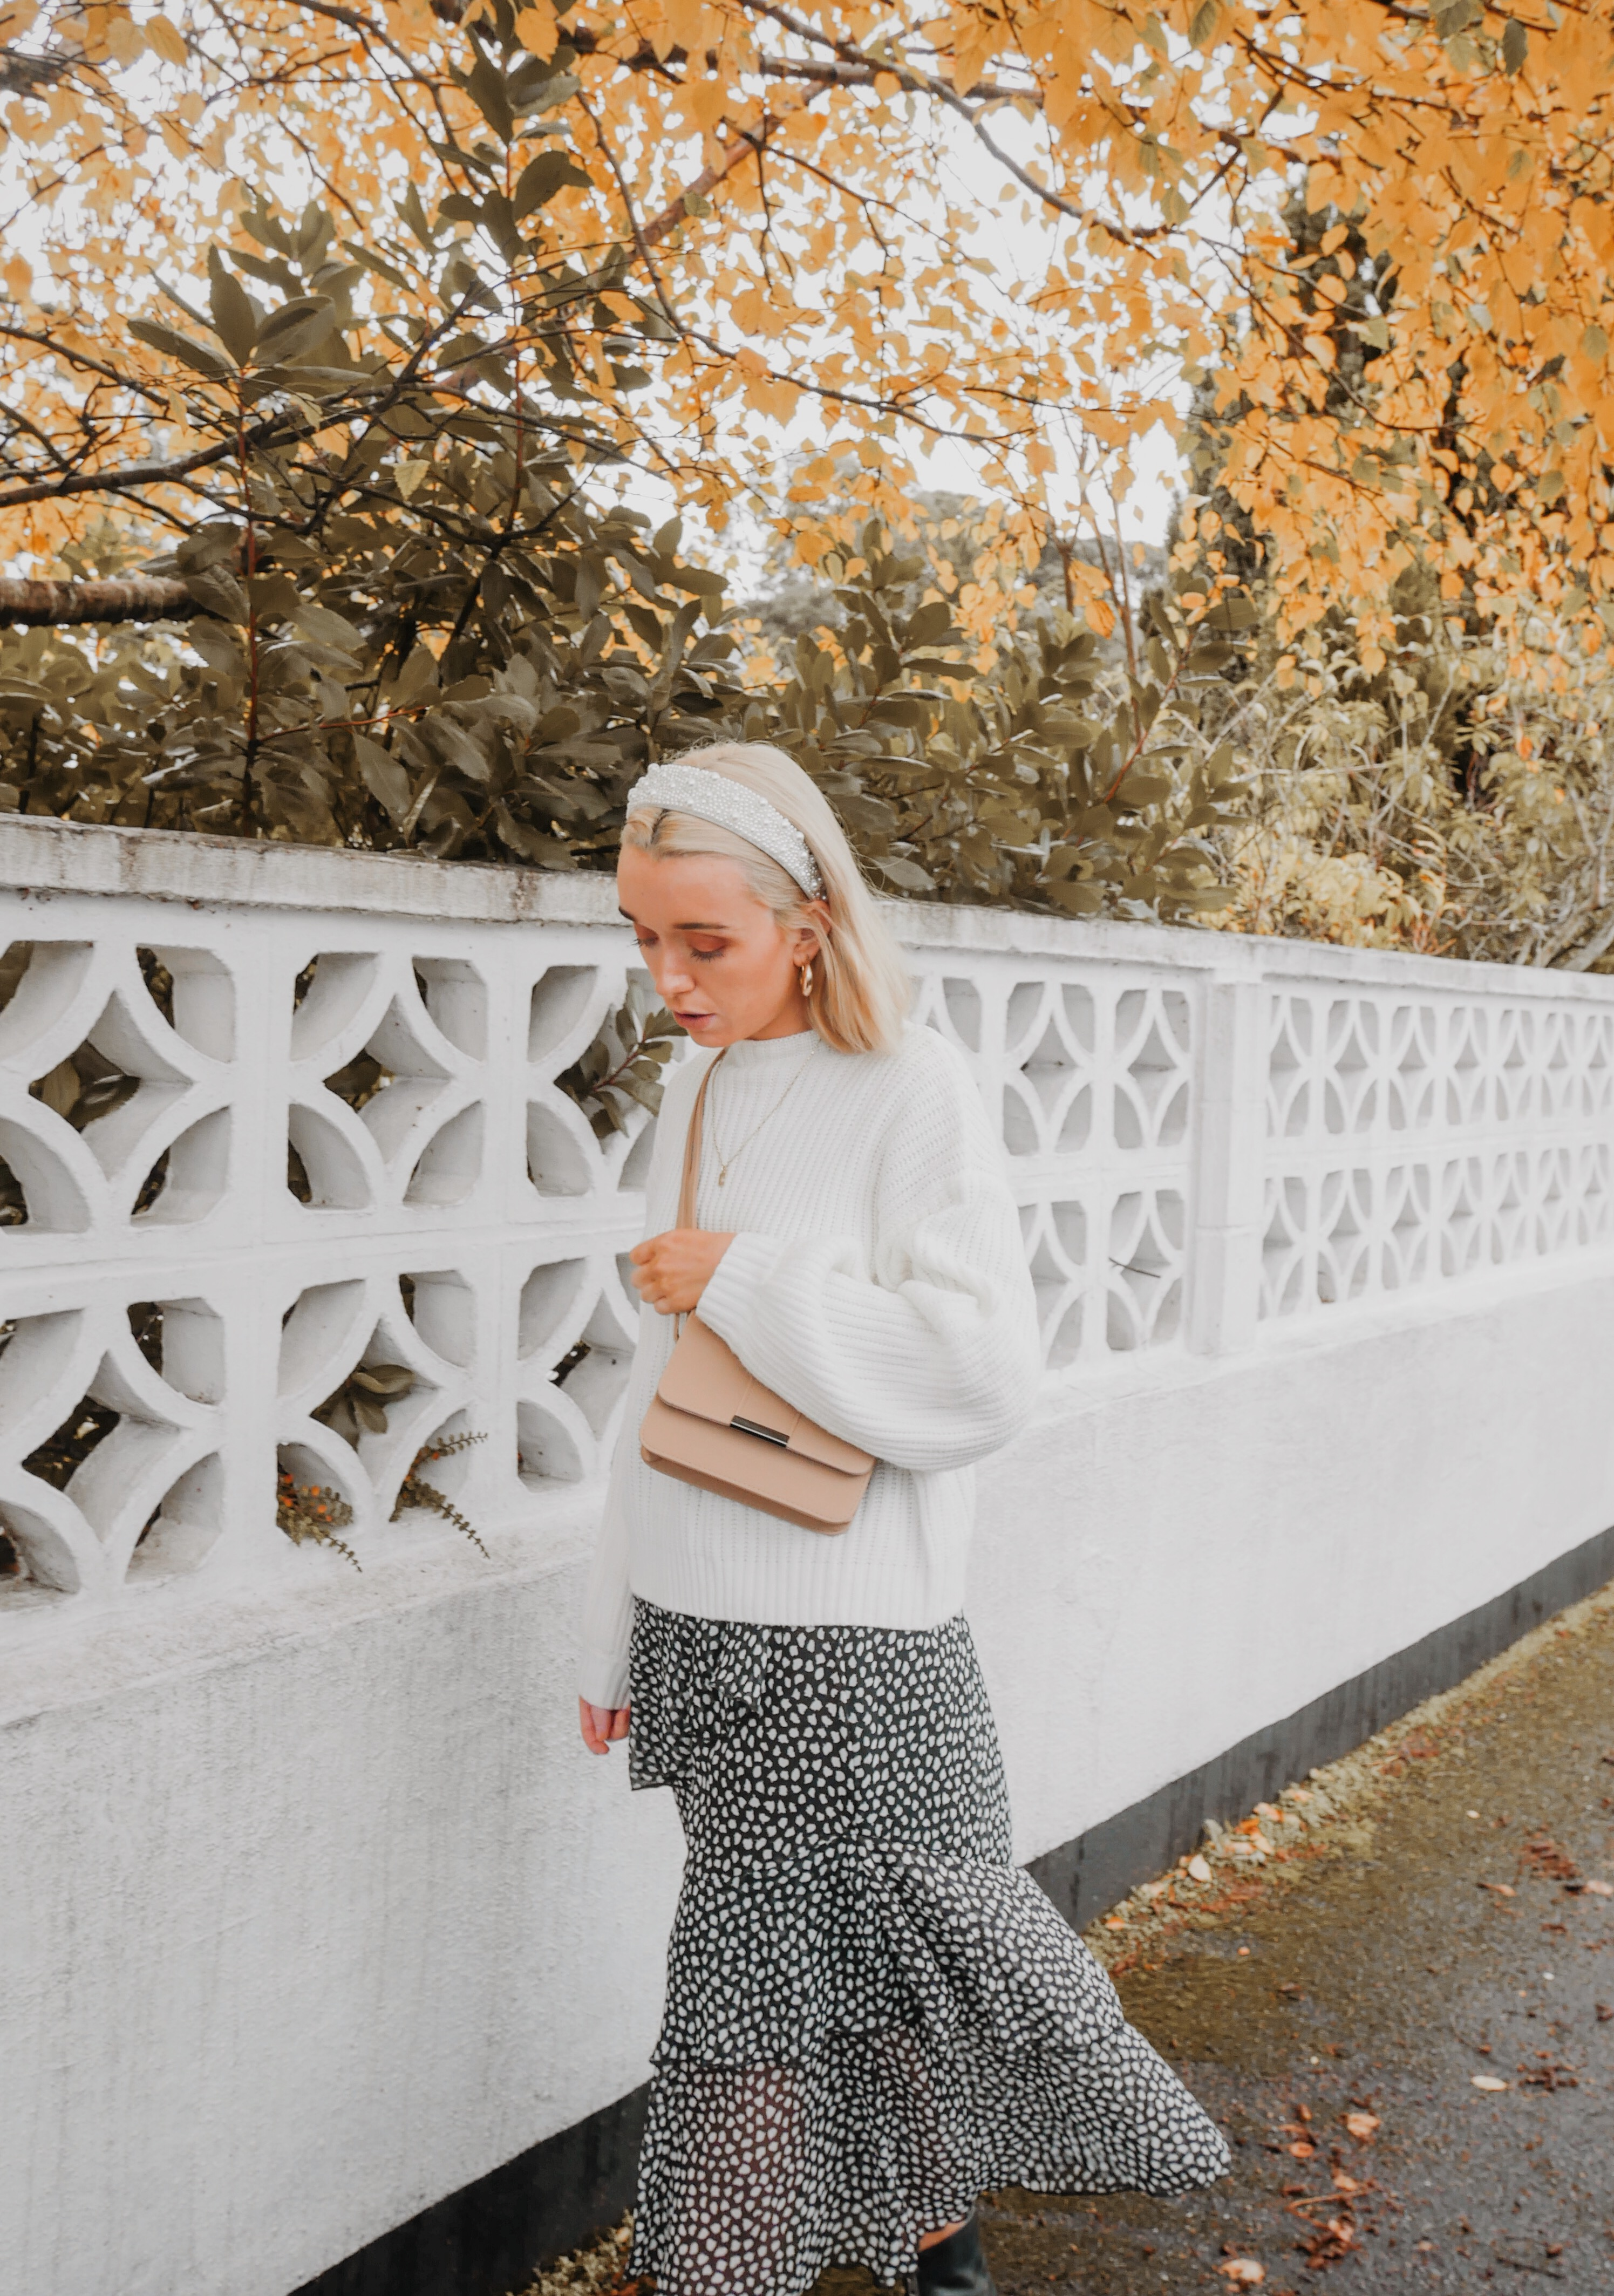 The Tiered Skirt Trend